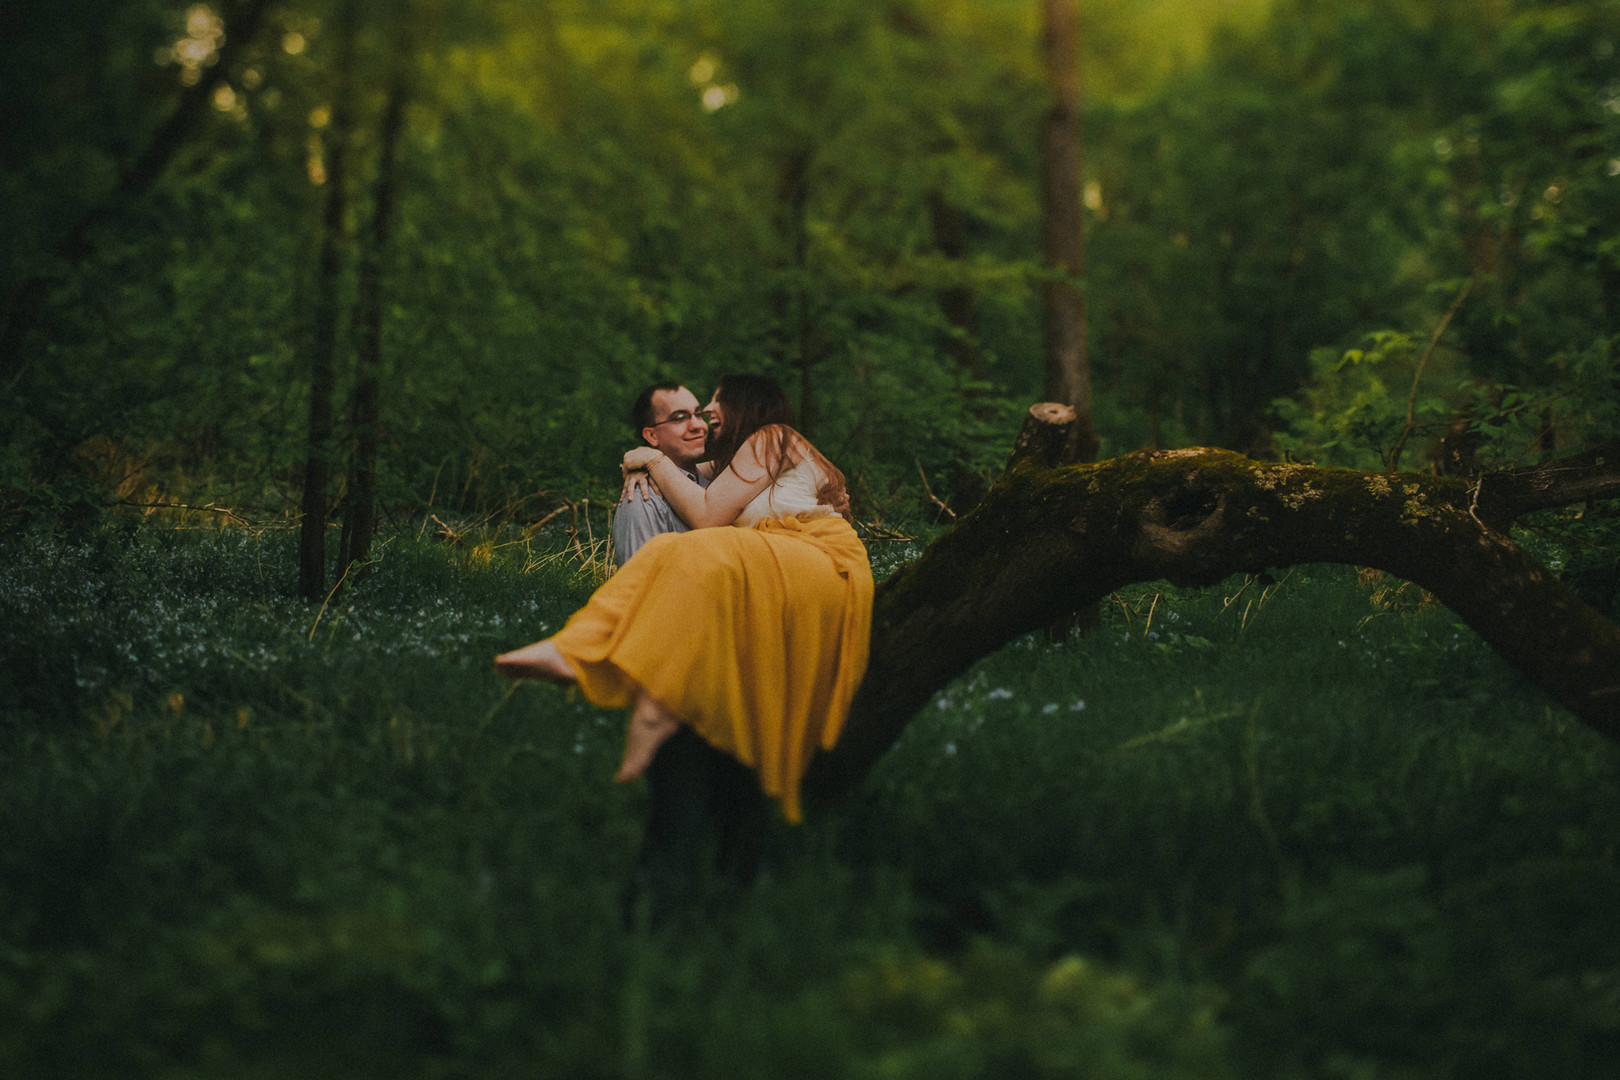 A man holds a woman in a forest during a Kickapoo, Wisconsin engagement session